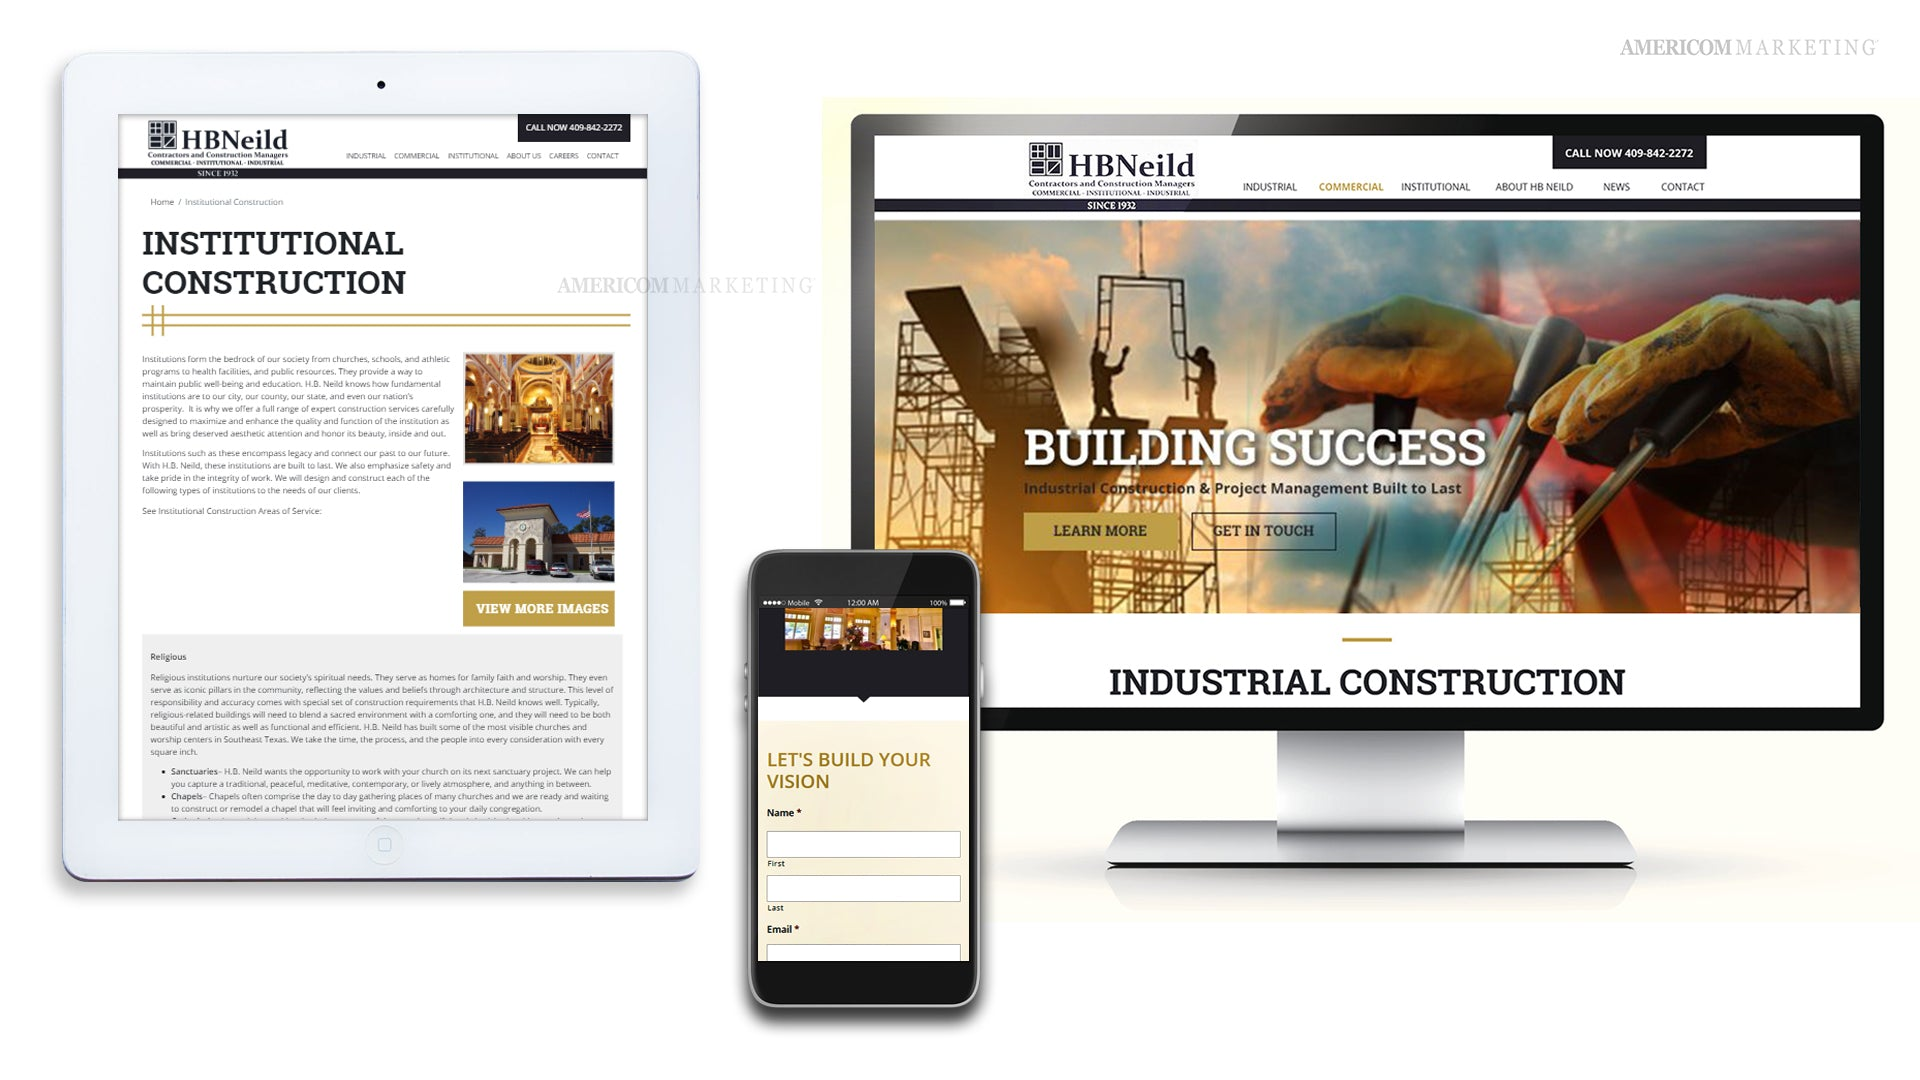 HB Nield Mobile Website Design View